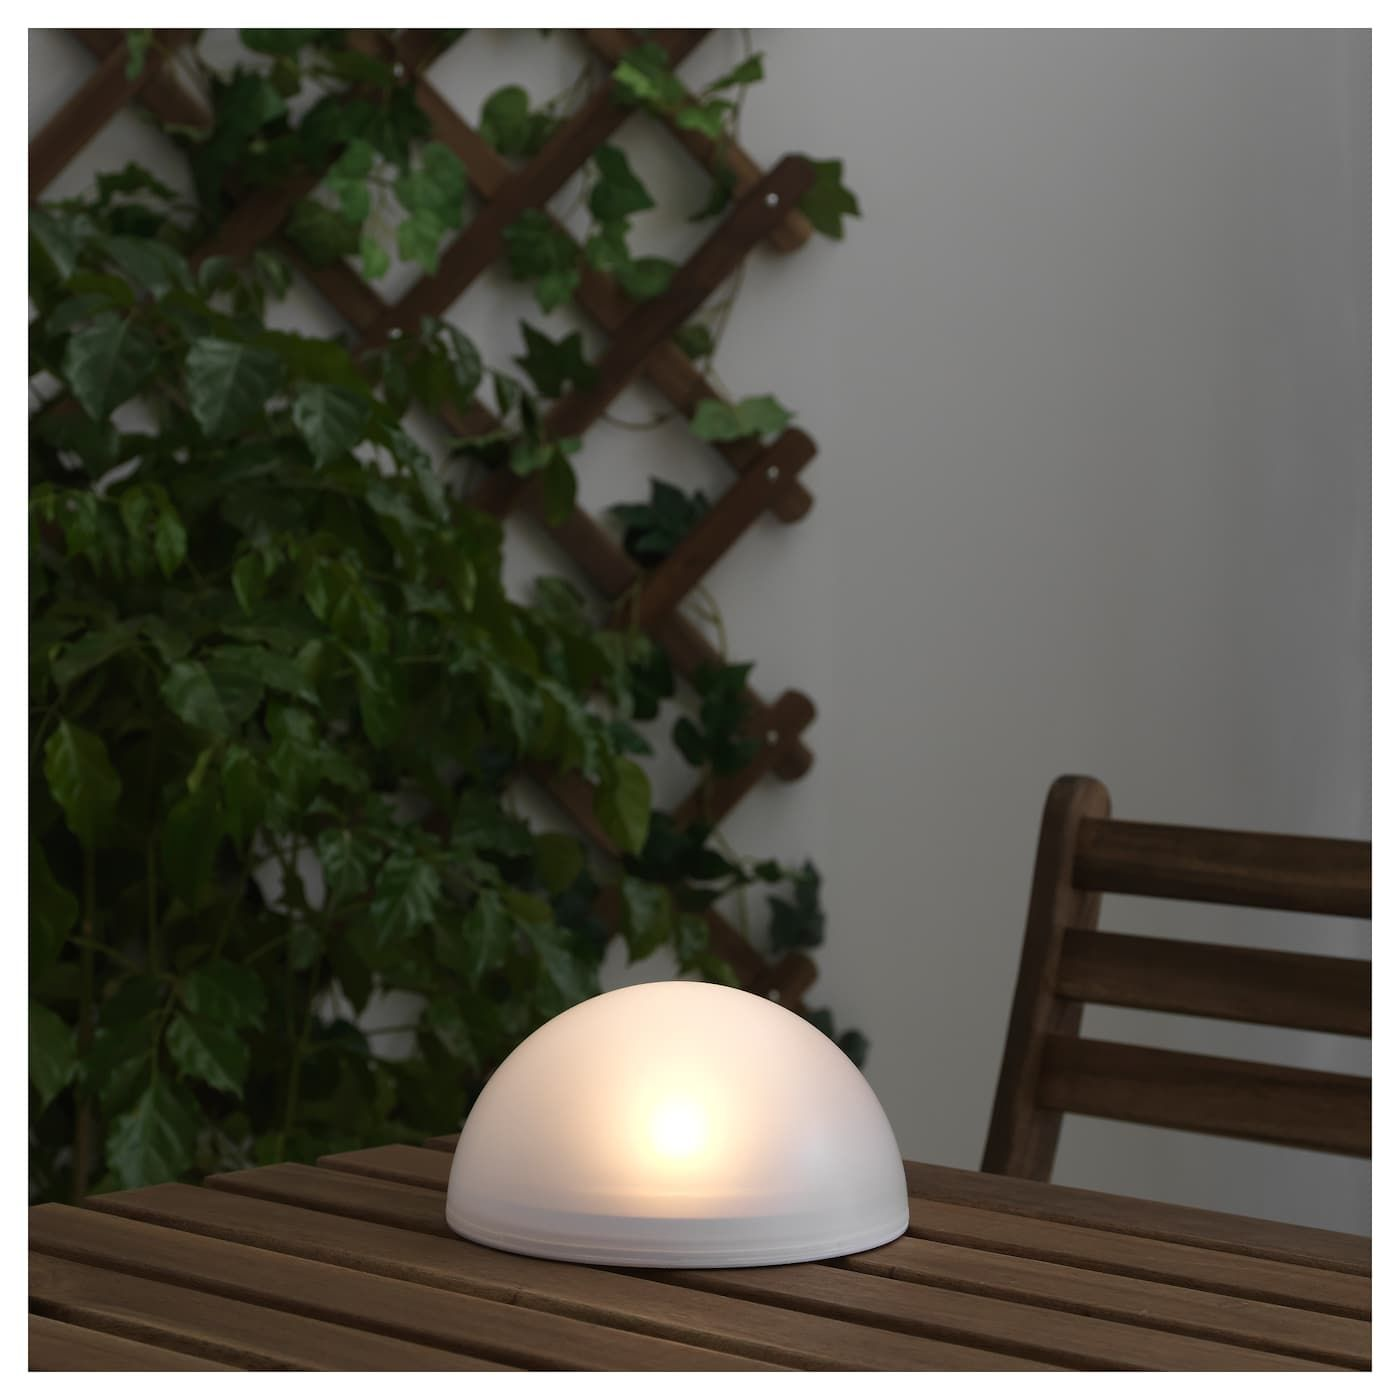 Solvinden Led Solar Powered Light Outdoor Half Globe White Ikea Solar Powered Lights Solar Panels For Home Diy Solar